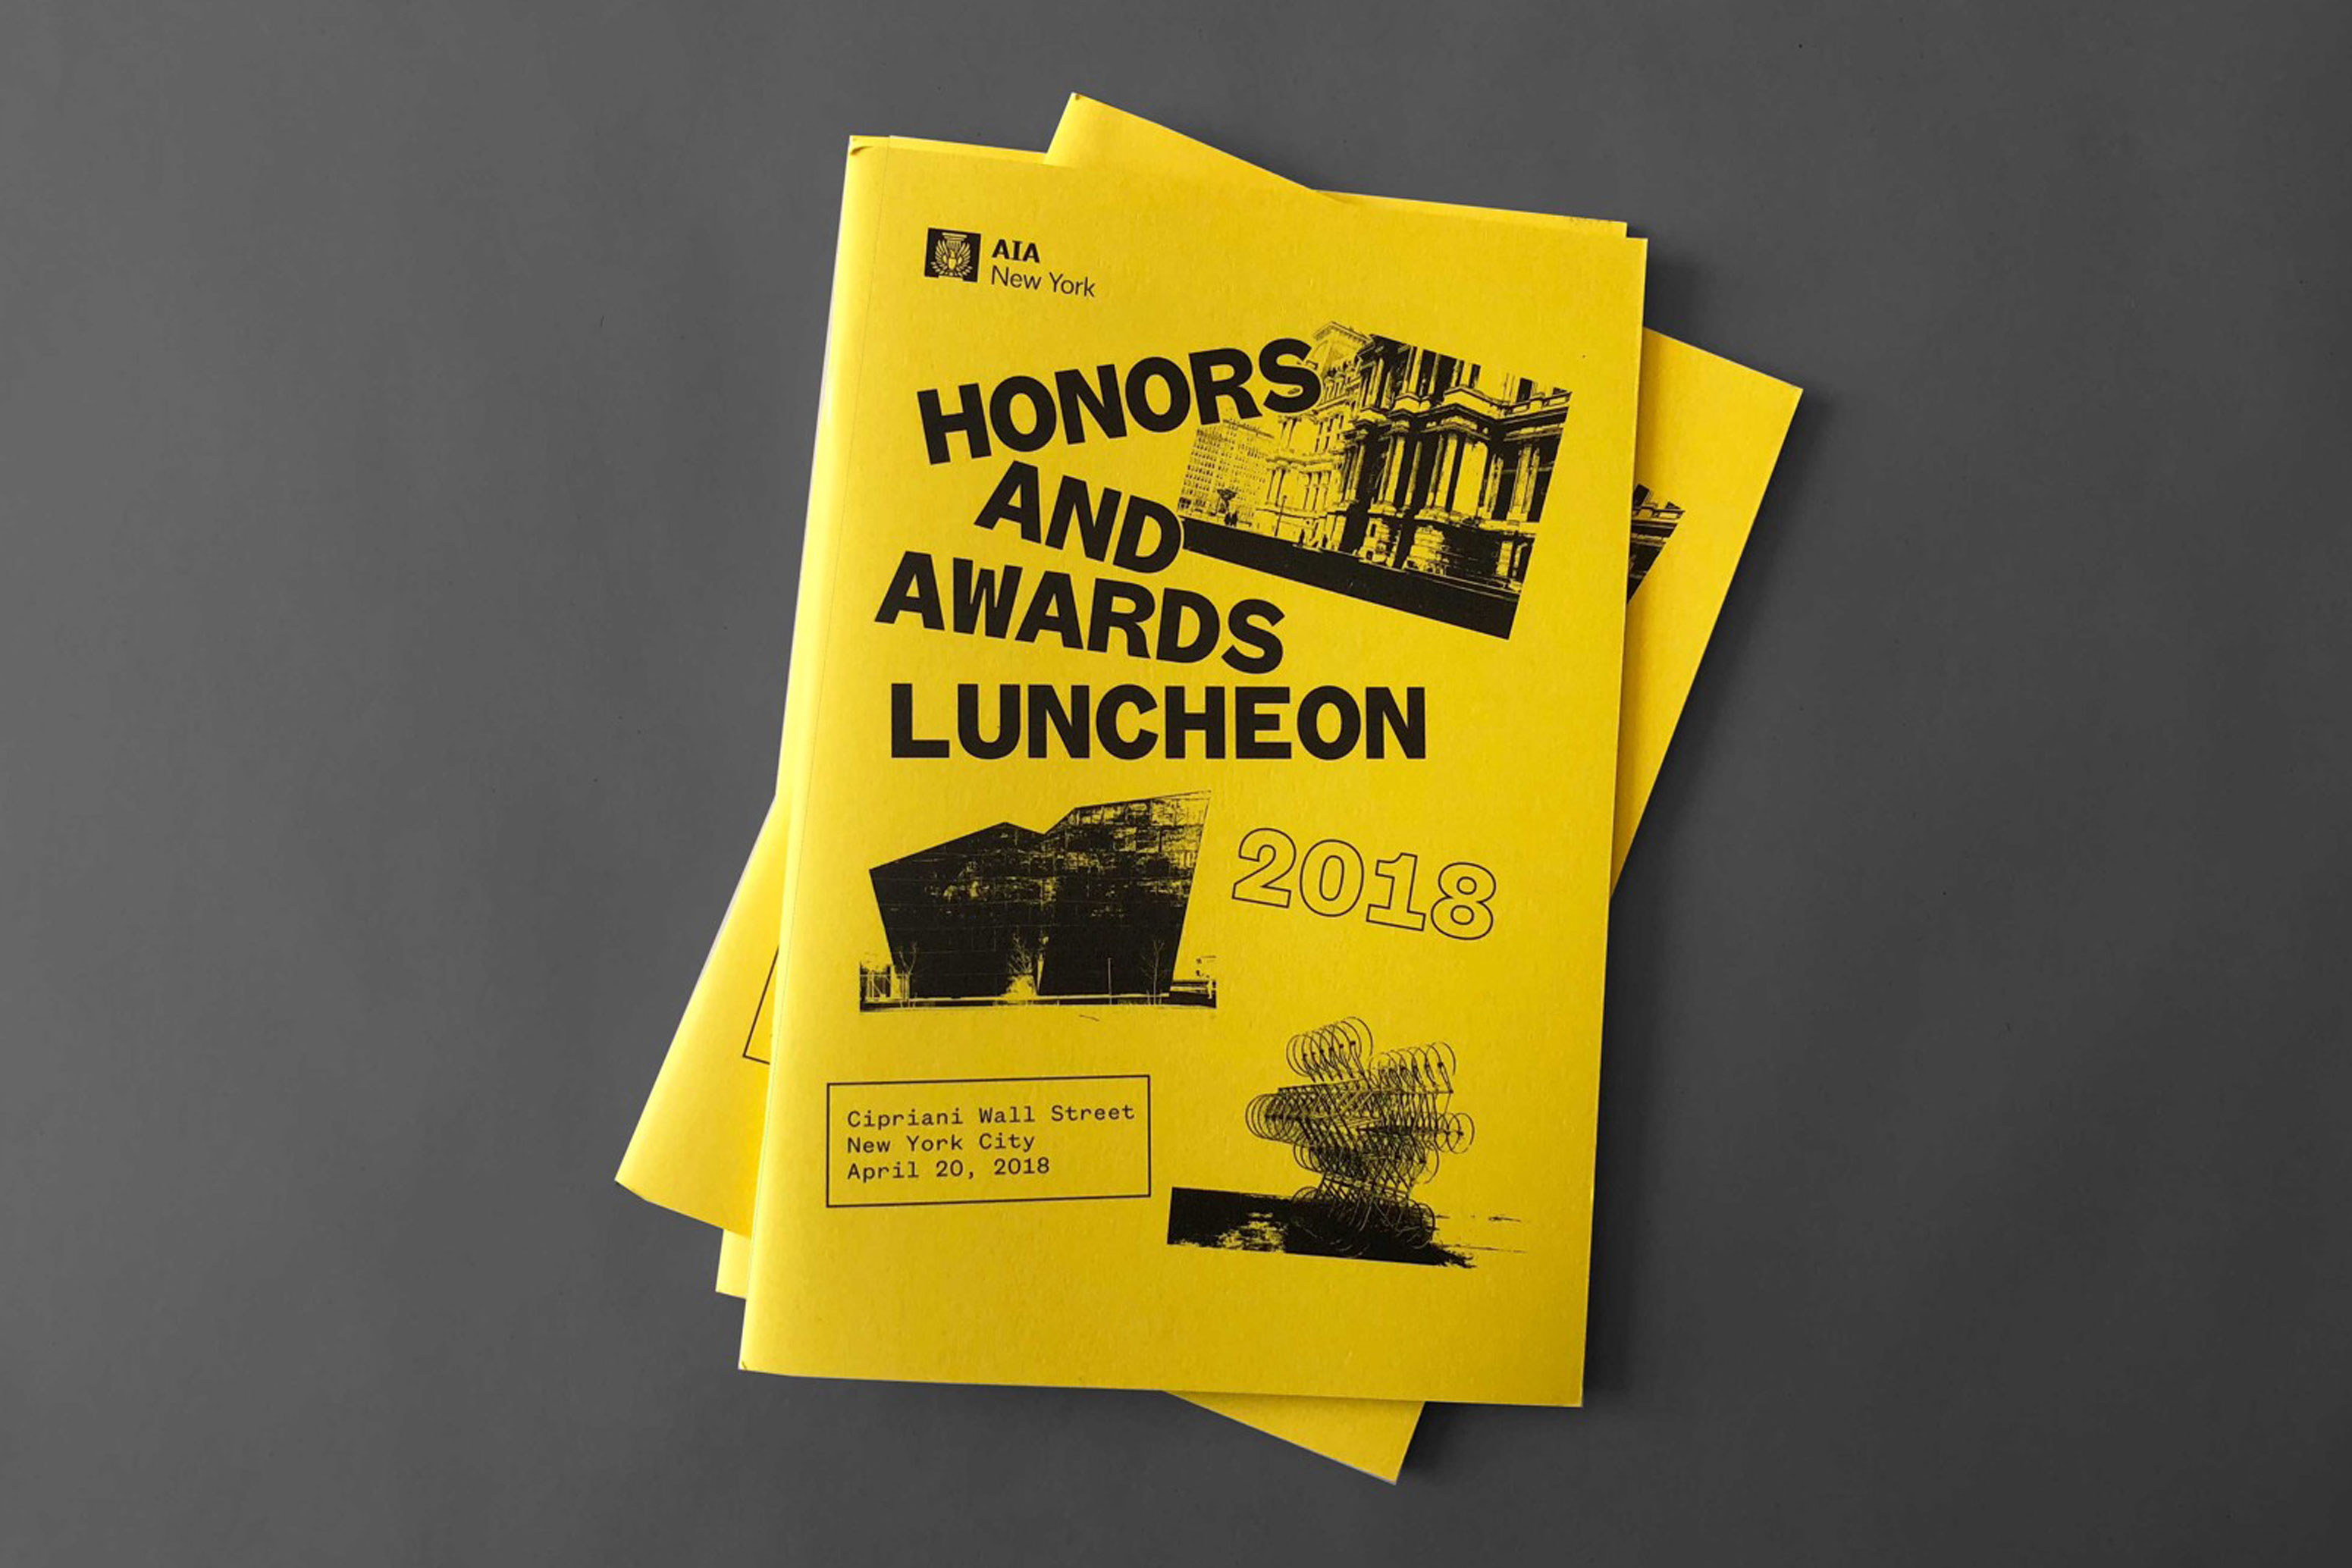 AIANY 2018 Honors and Awards Luncheon